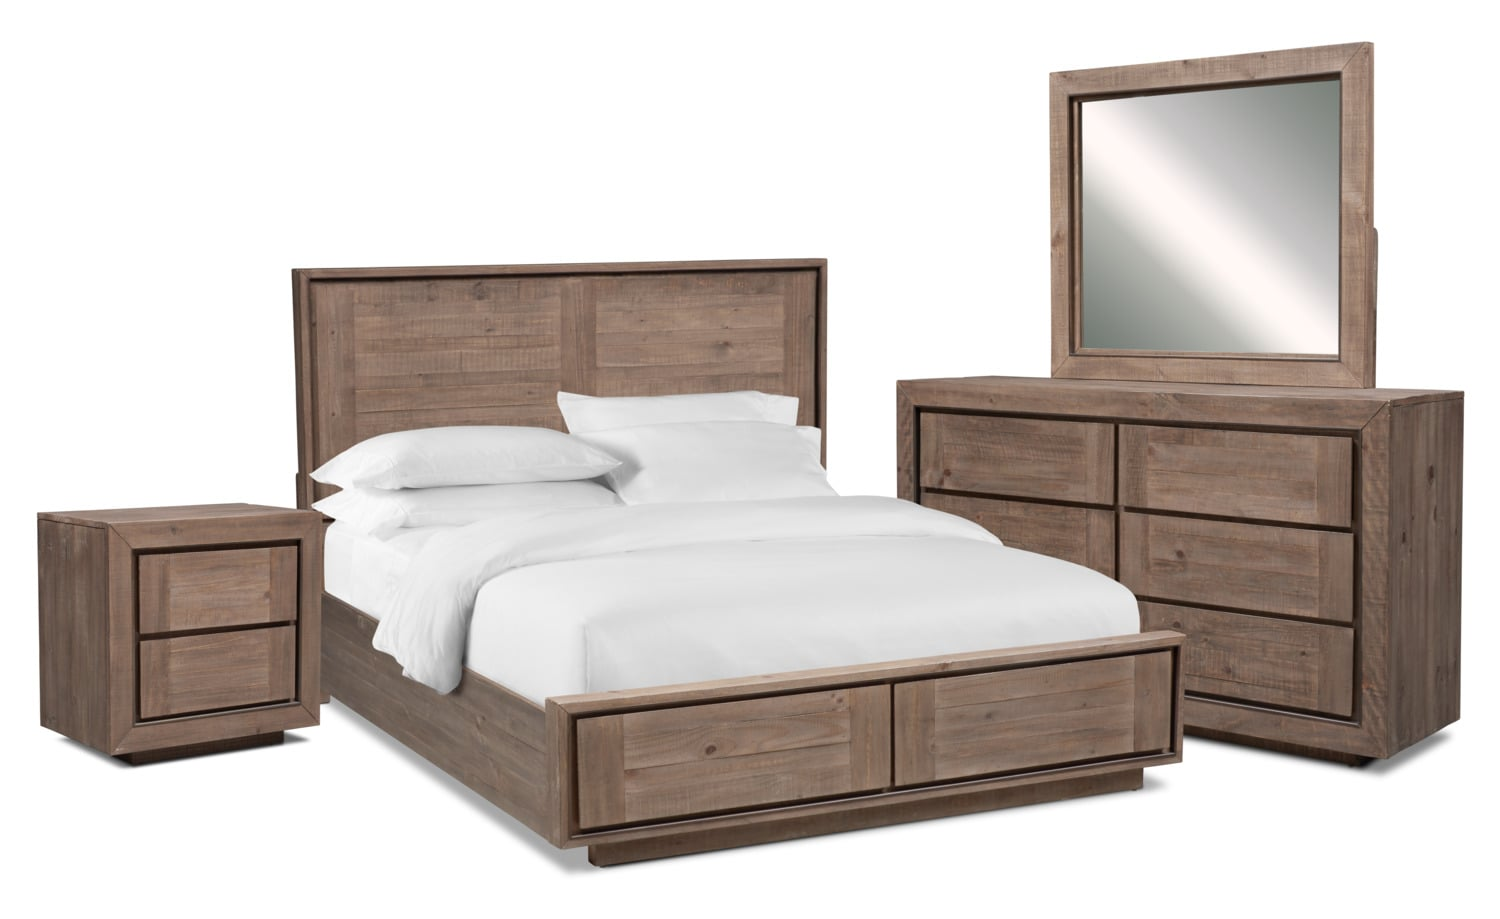 Henry 6-Piece Storage Bedroom Set with Nightstand, Dresser and ...